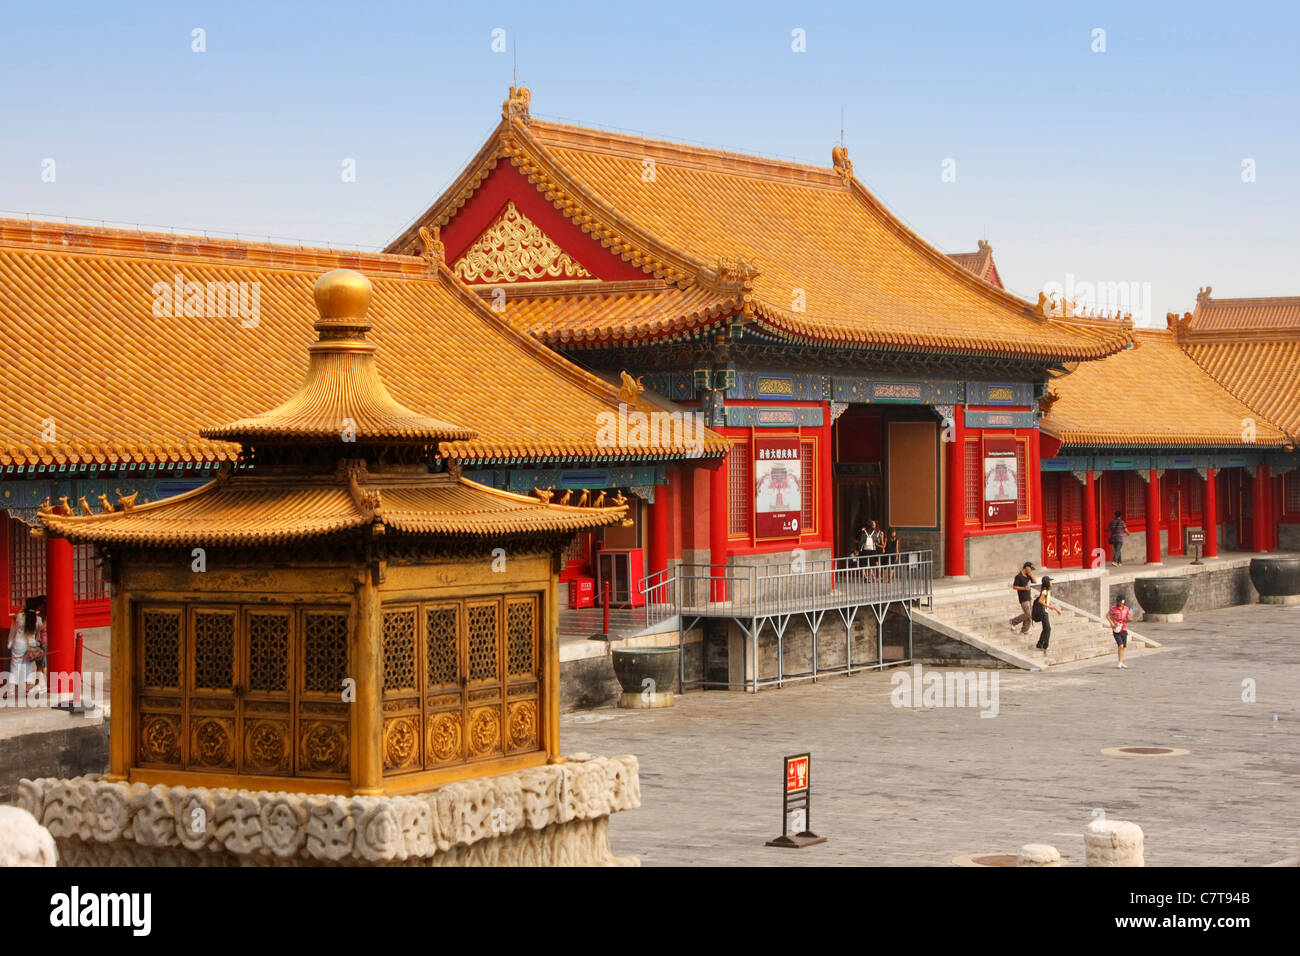 China, Beijing, the Forbidden City in the Imperial Palace Stock Photo